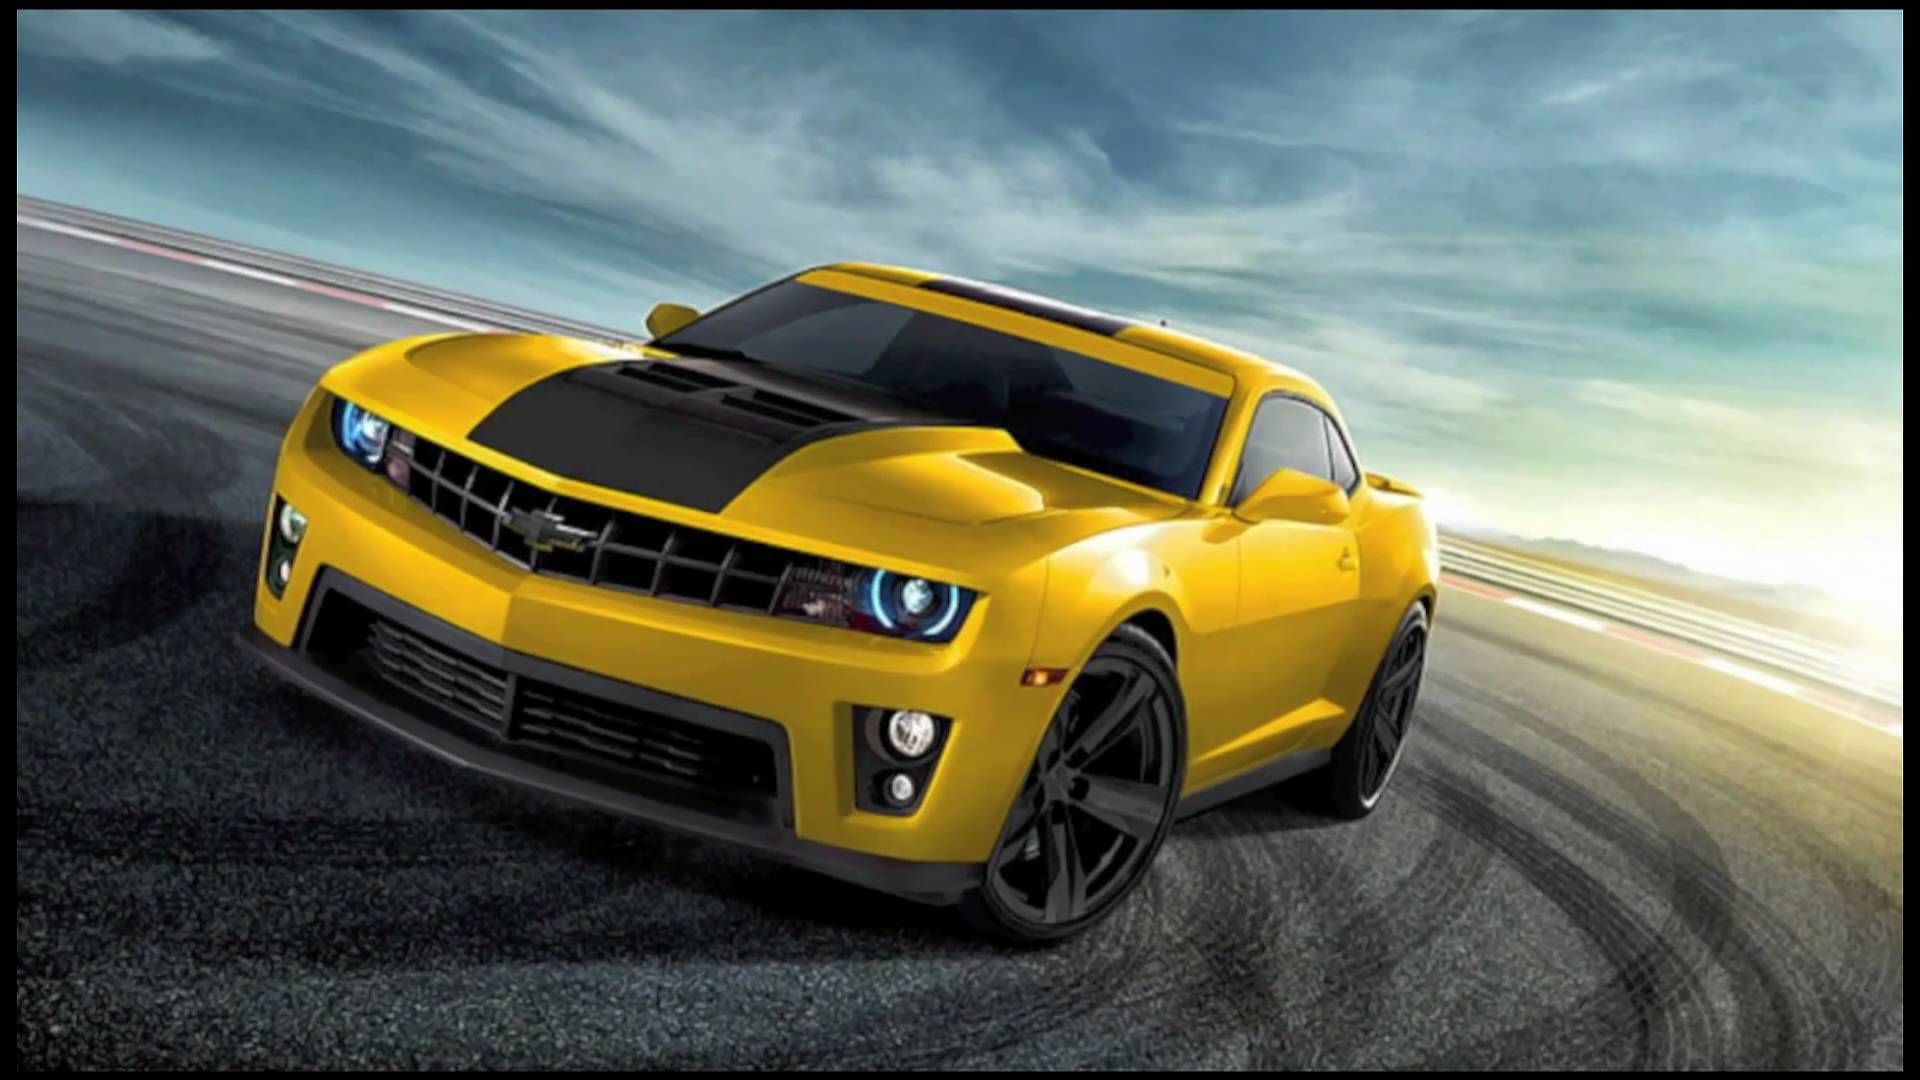 Chevrolet Camaro SS HD Wallpaper Download Chevrolet Camaro SS - Chevrolet dealer in houston tx